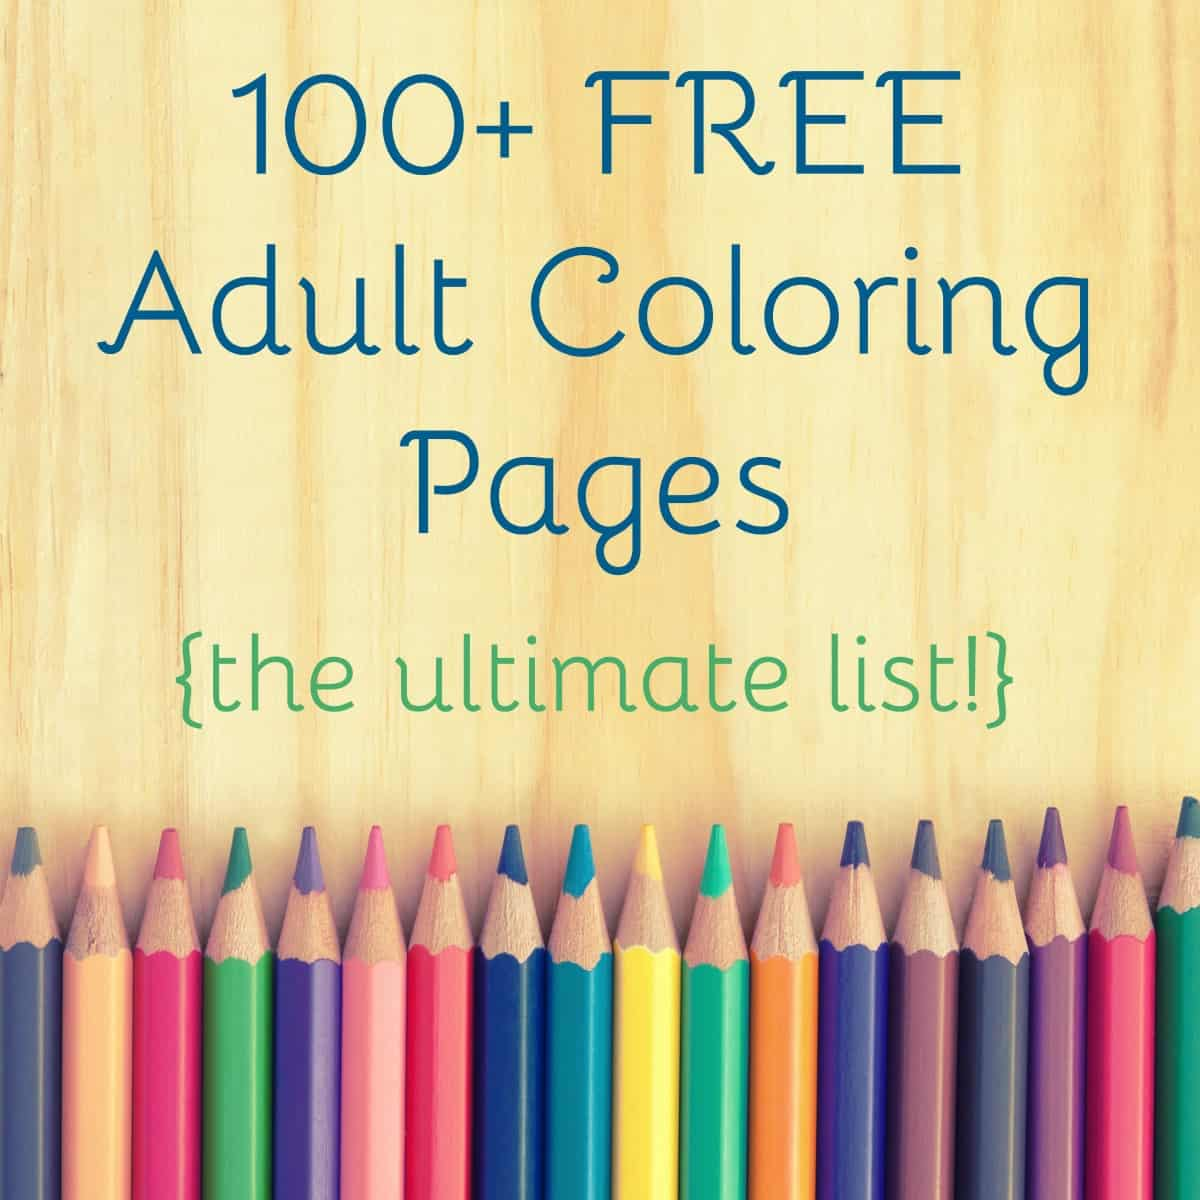 get links to over 100 free coloring pages youll love these favorites including - Free Adult Coloring Books